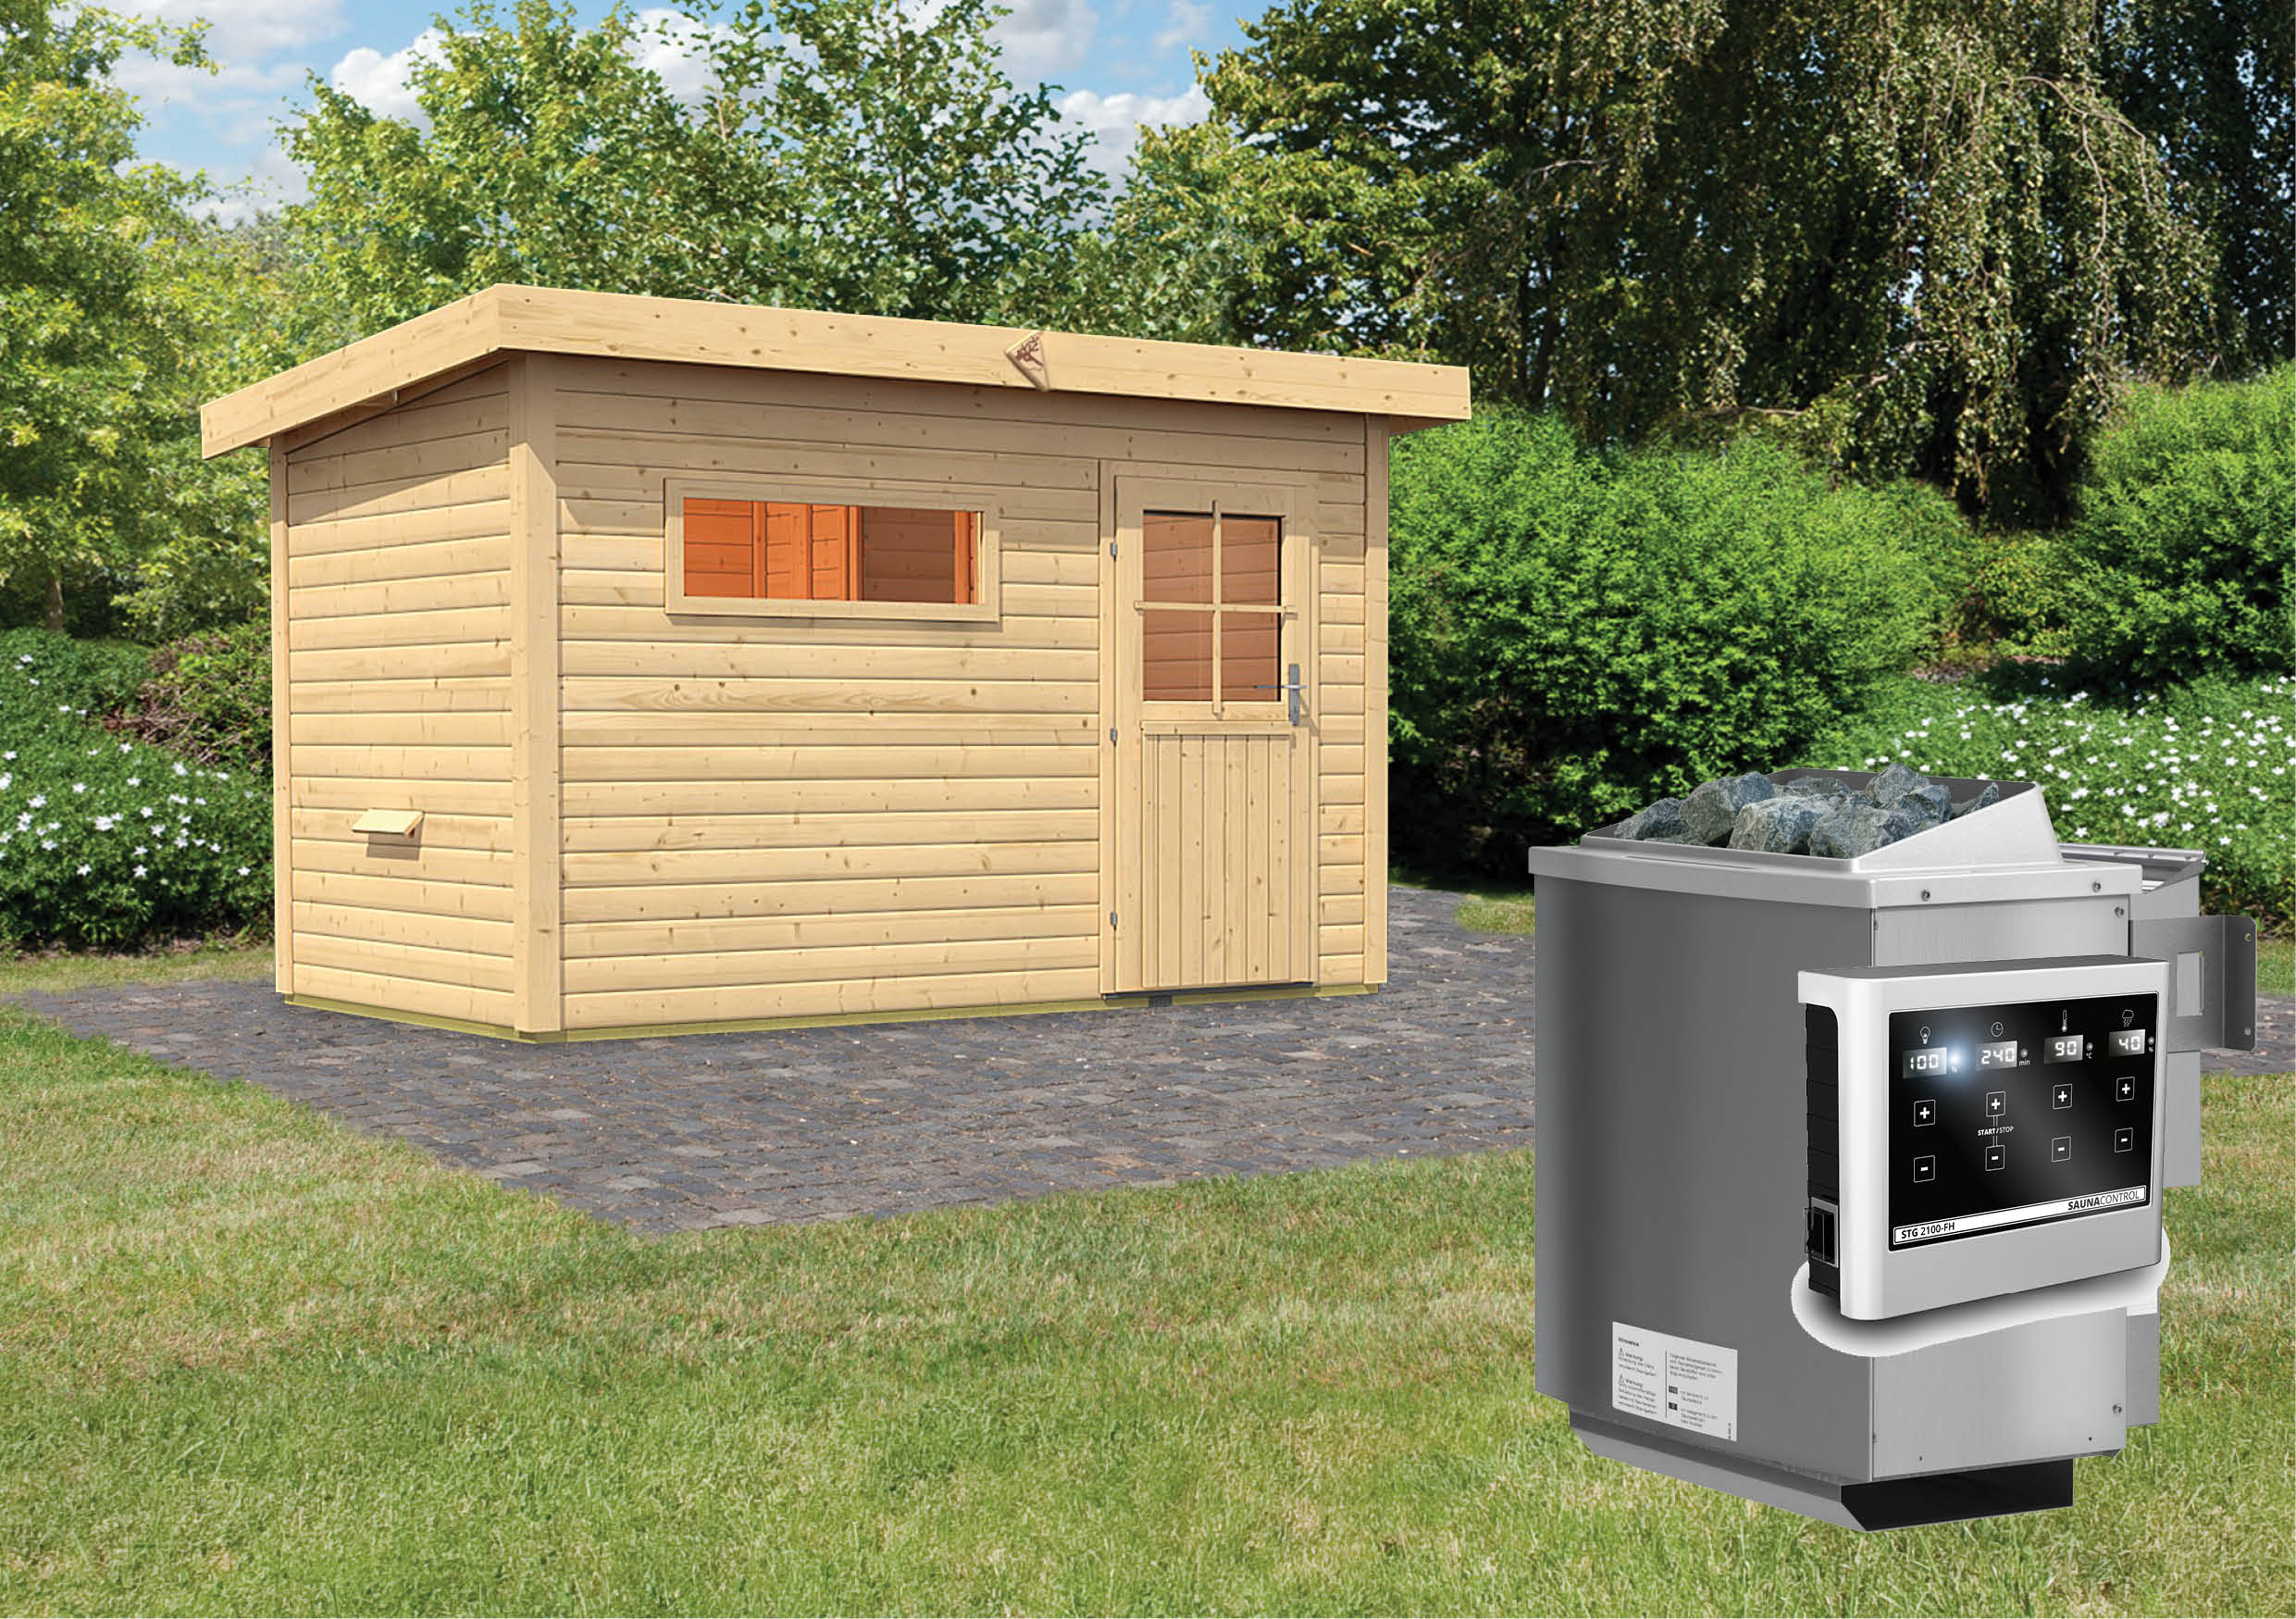 karibu gartensauna skrollan 1 3 37 x 1 96 m 38 mm mit 9 kw ofen saunahaus sauna ebay. Black Bedroom Furniture Sets. Home Design Ideas